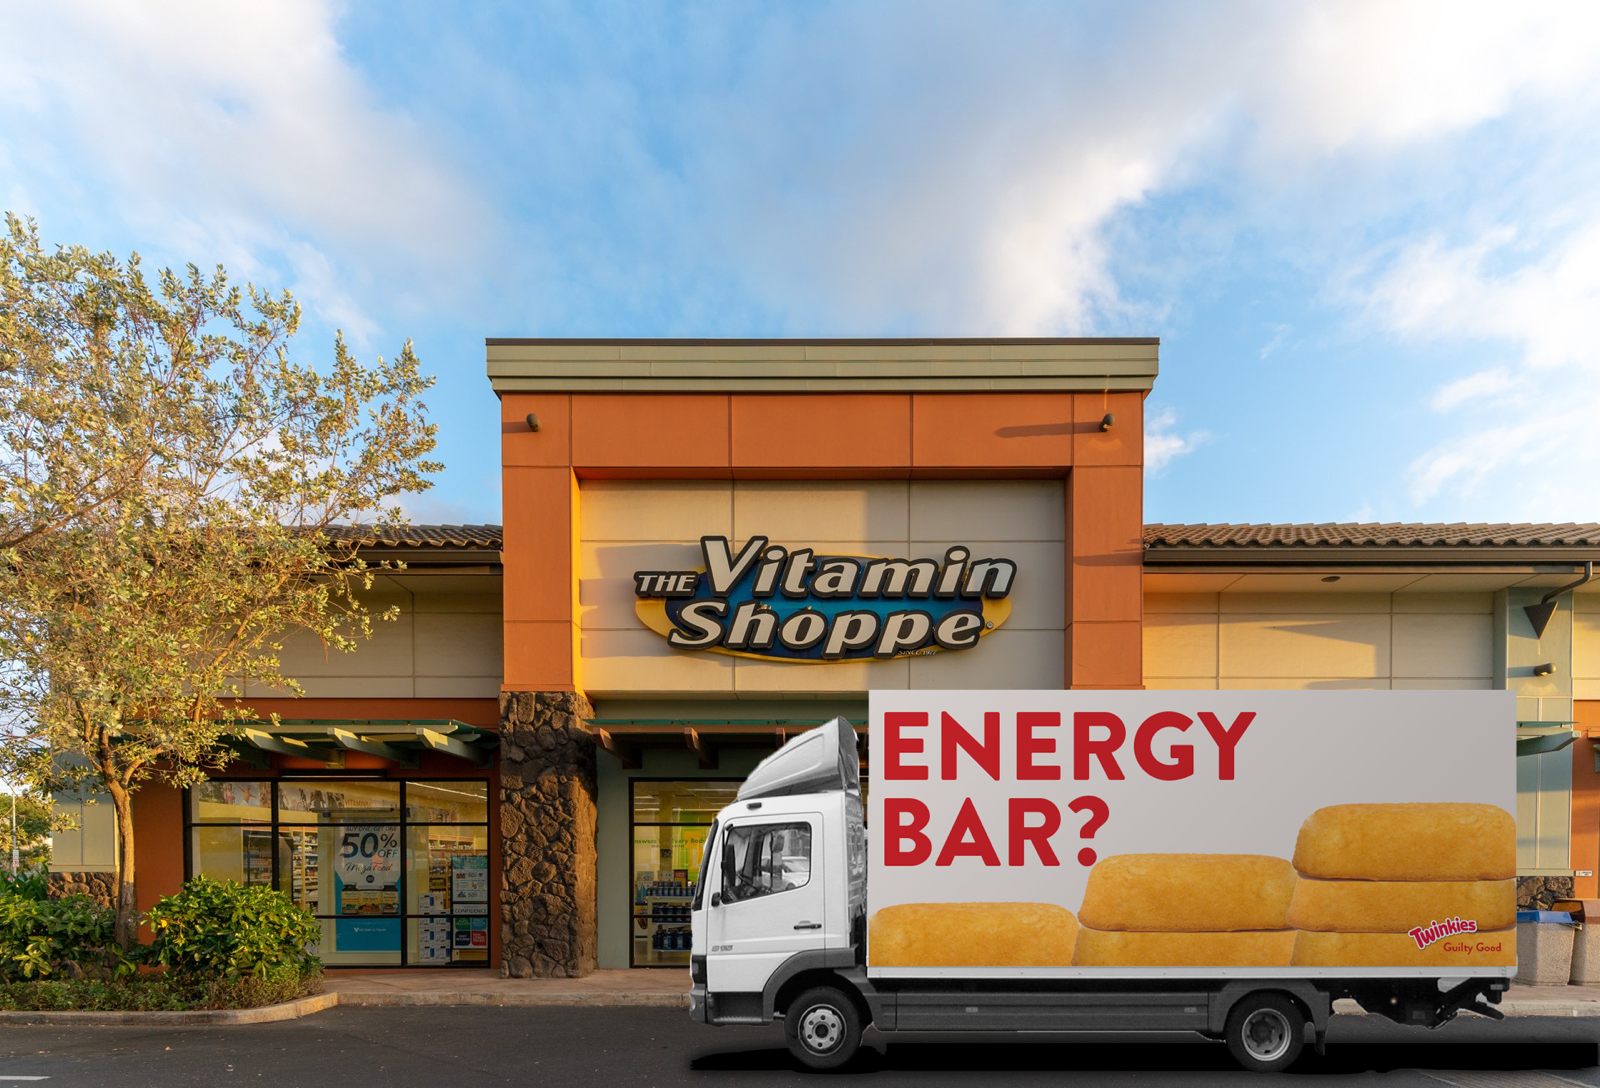 TWINKIES VITAMIN SHOPPE TRUCK-1.png